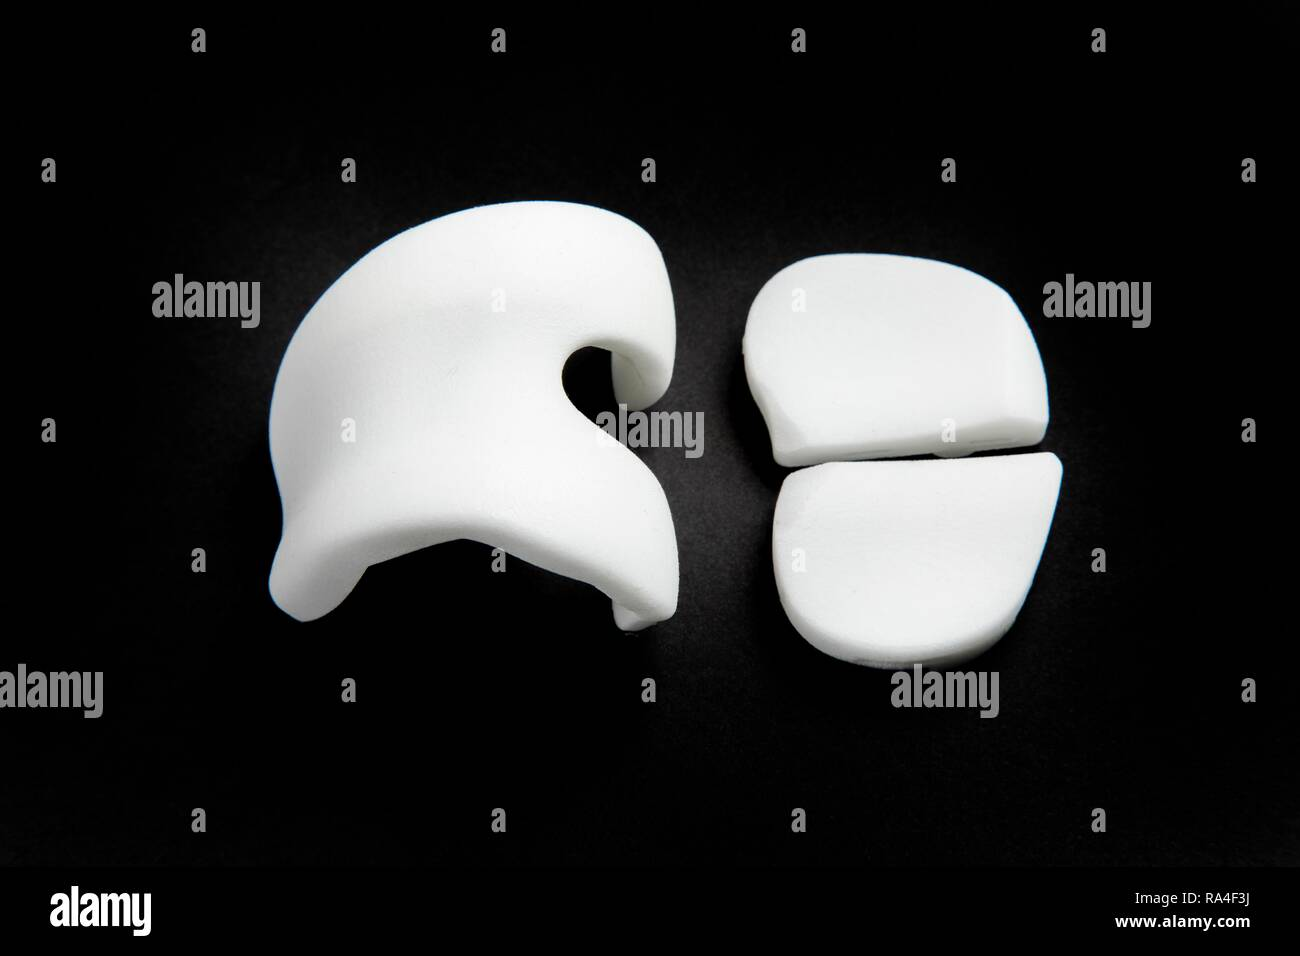 Knee prosthesis, knee endoprosthesis or knee joint prosthesis, made of plastic, individual prosthesis made of plastic - Stock Image